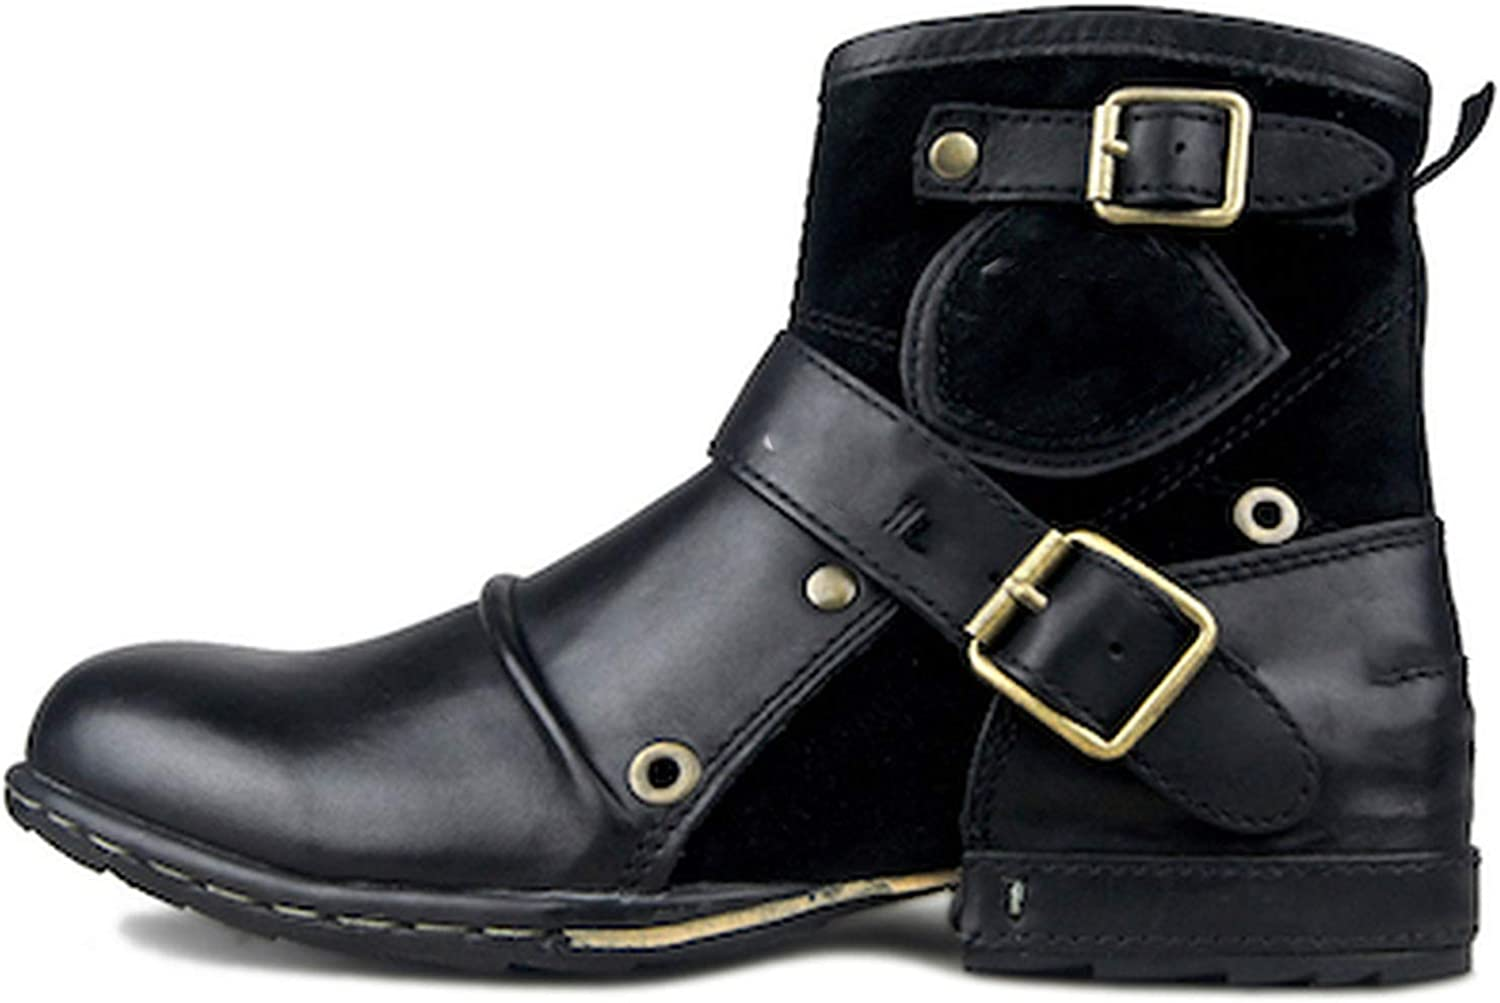 Good-Memories Men's Martin Boots Genuine Cow Leather High Top Ankle Boots